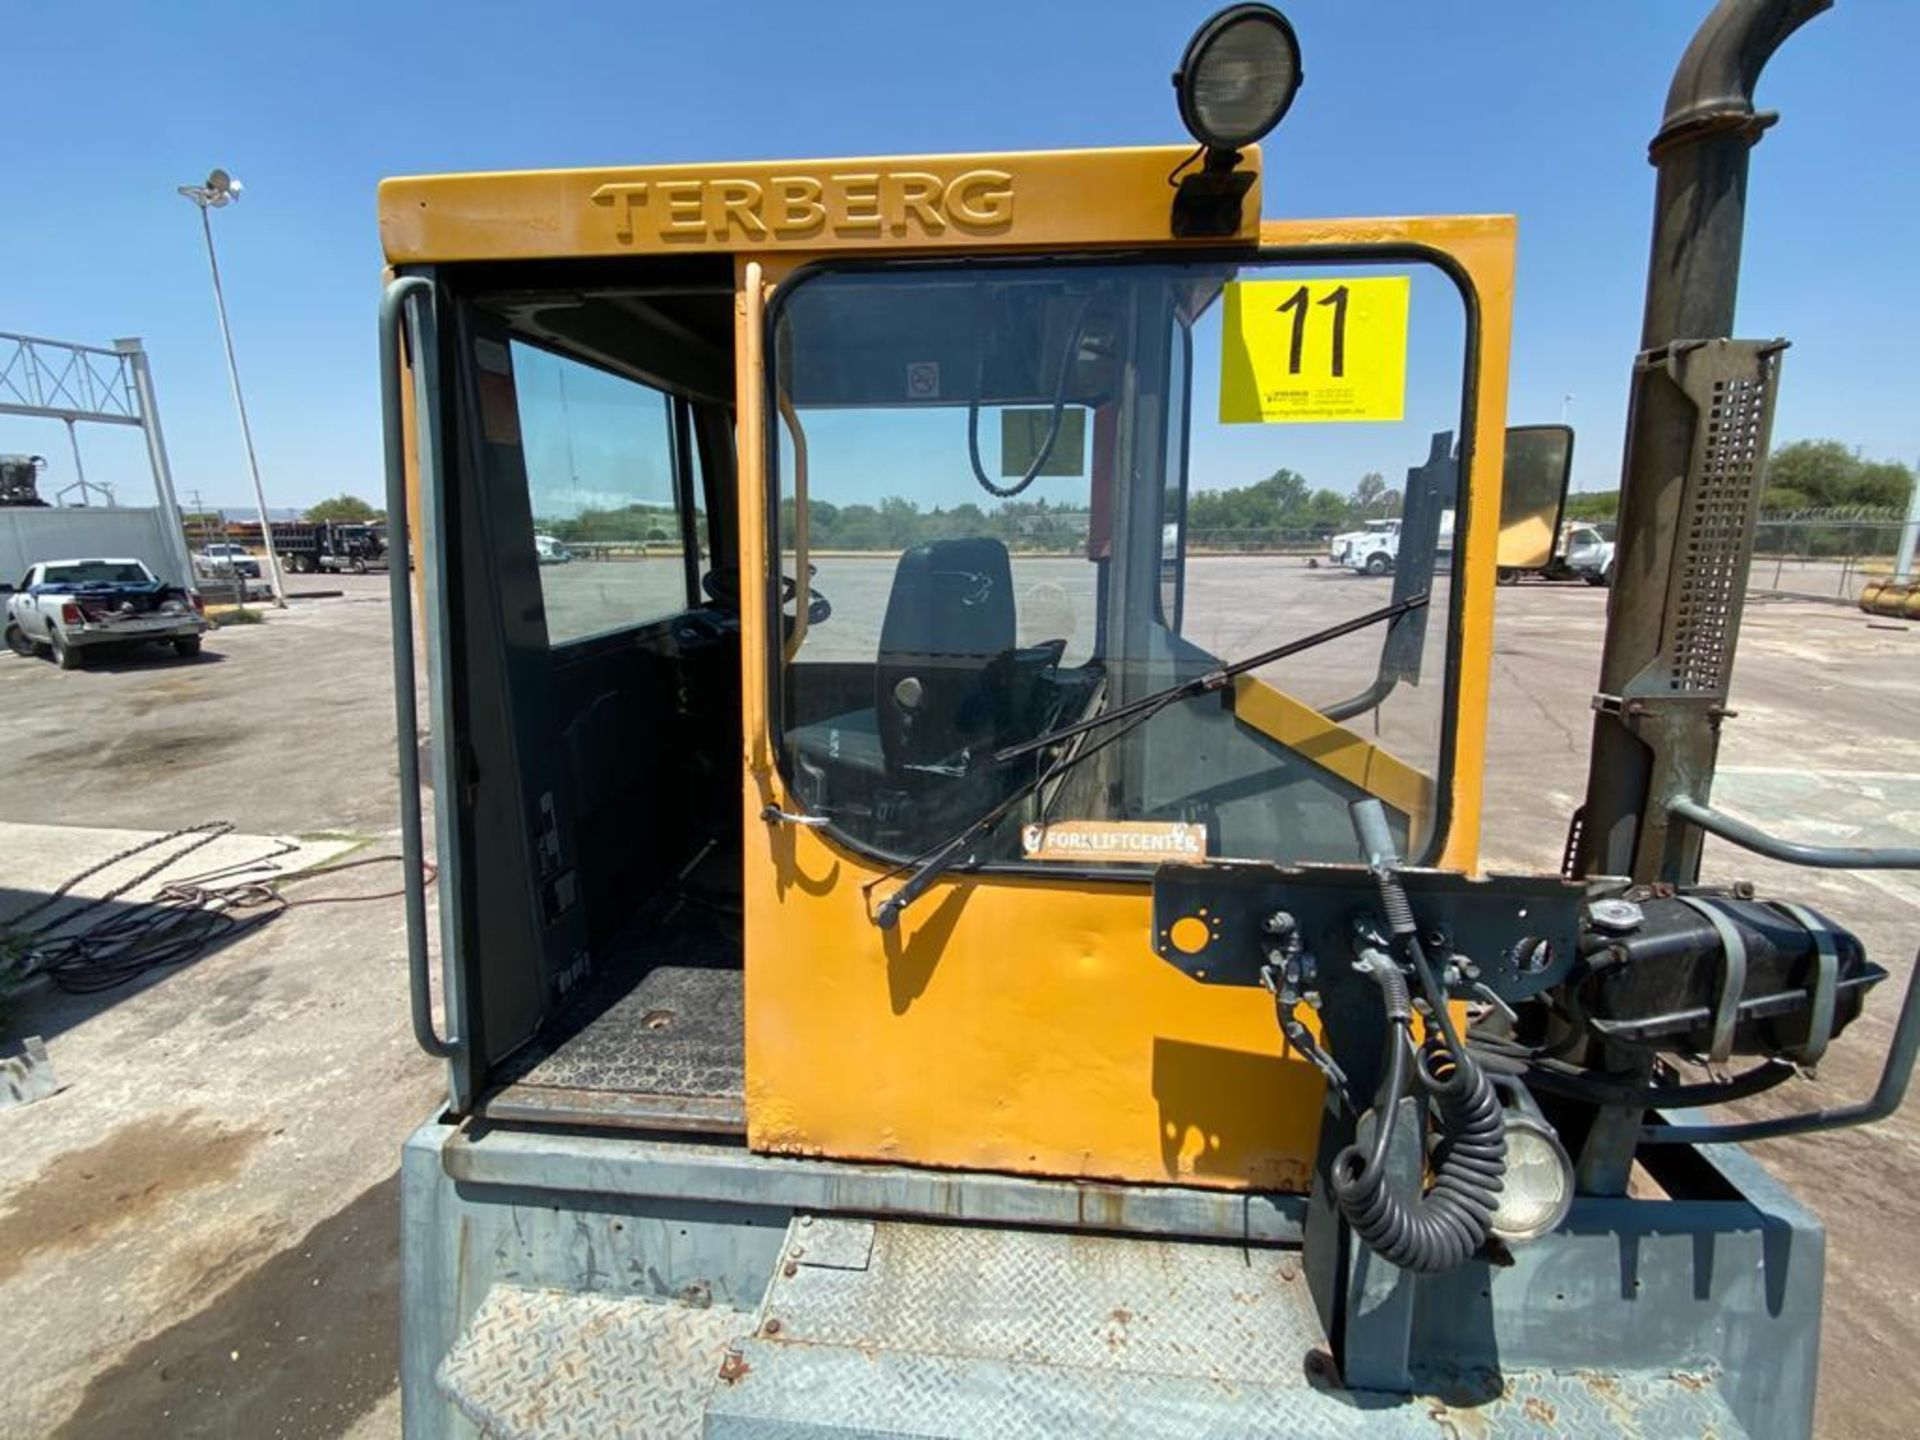 Terberg Capacity 2002 Terminal Tractor, automatic transmission - Image 19 of 57